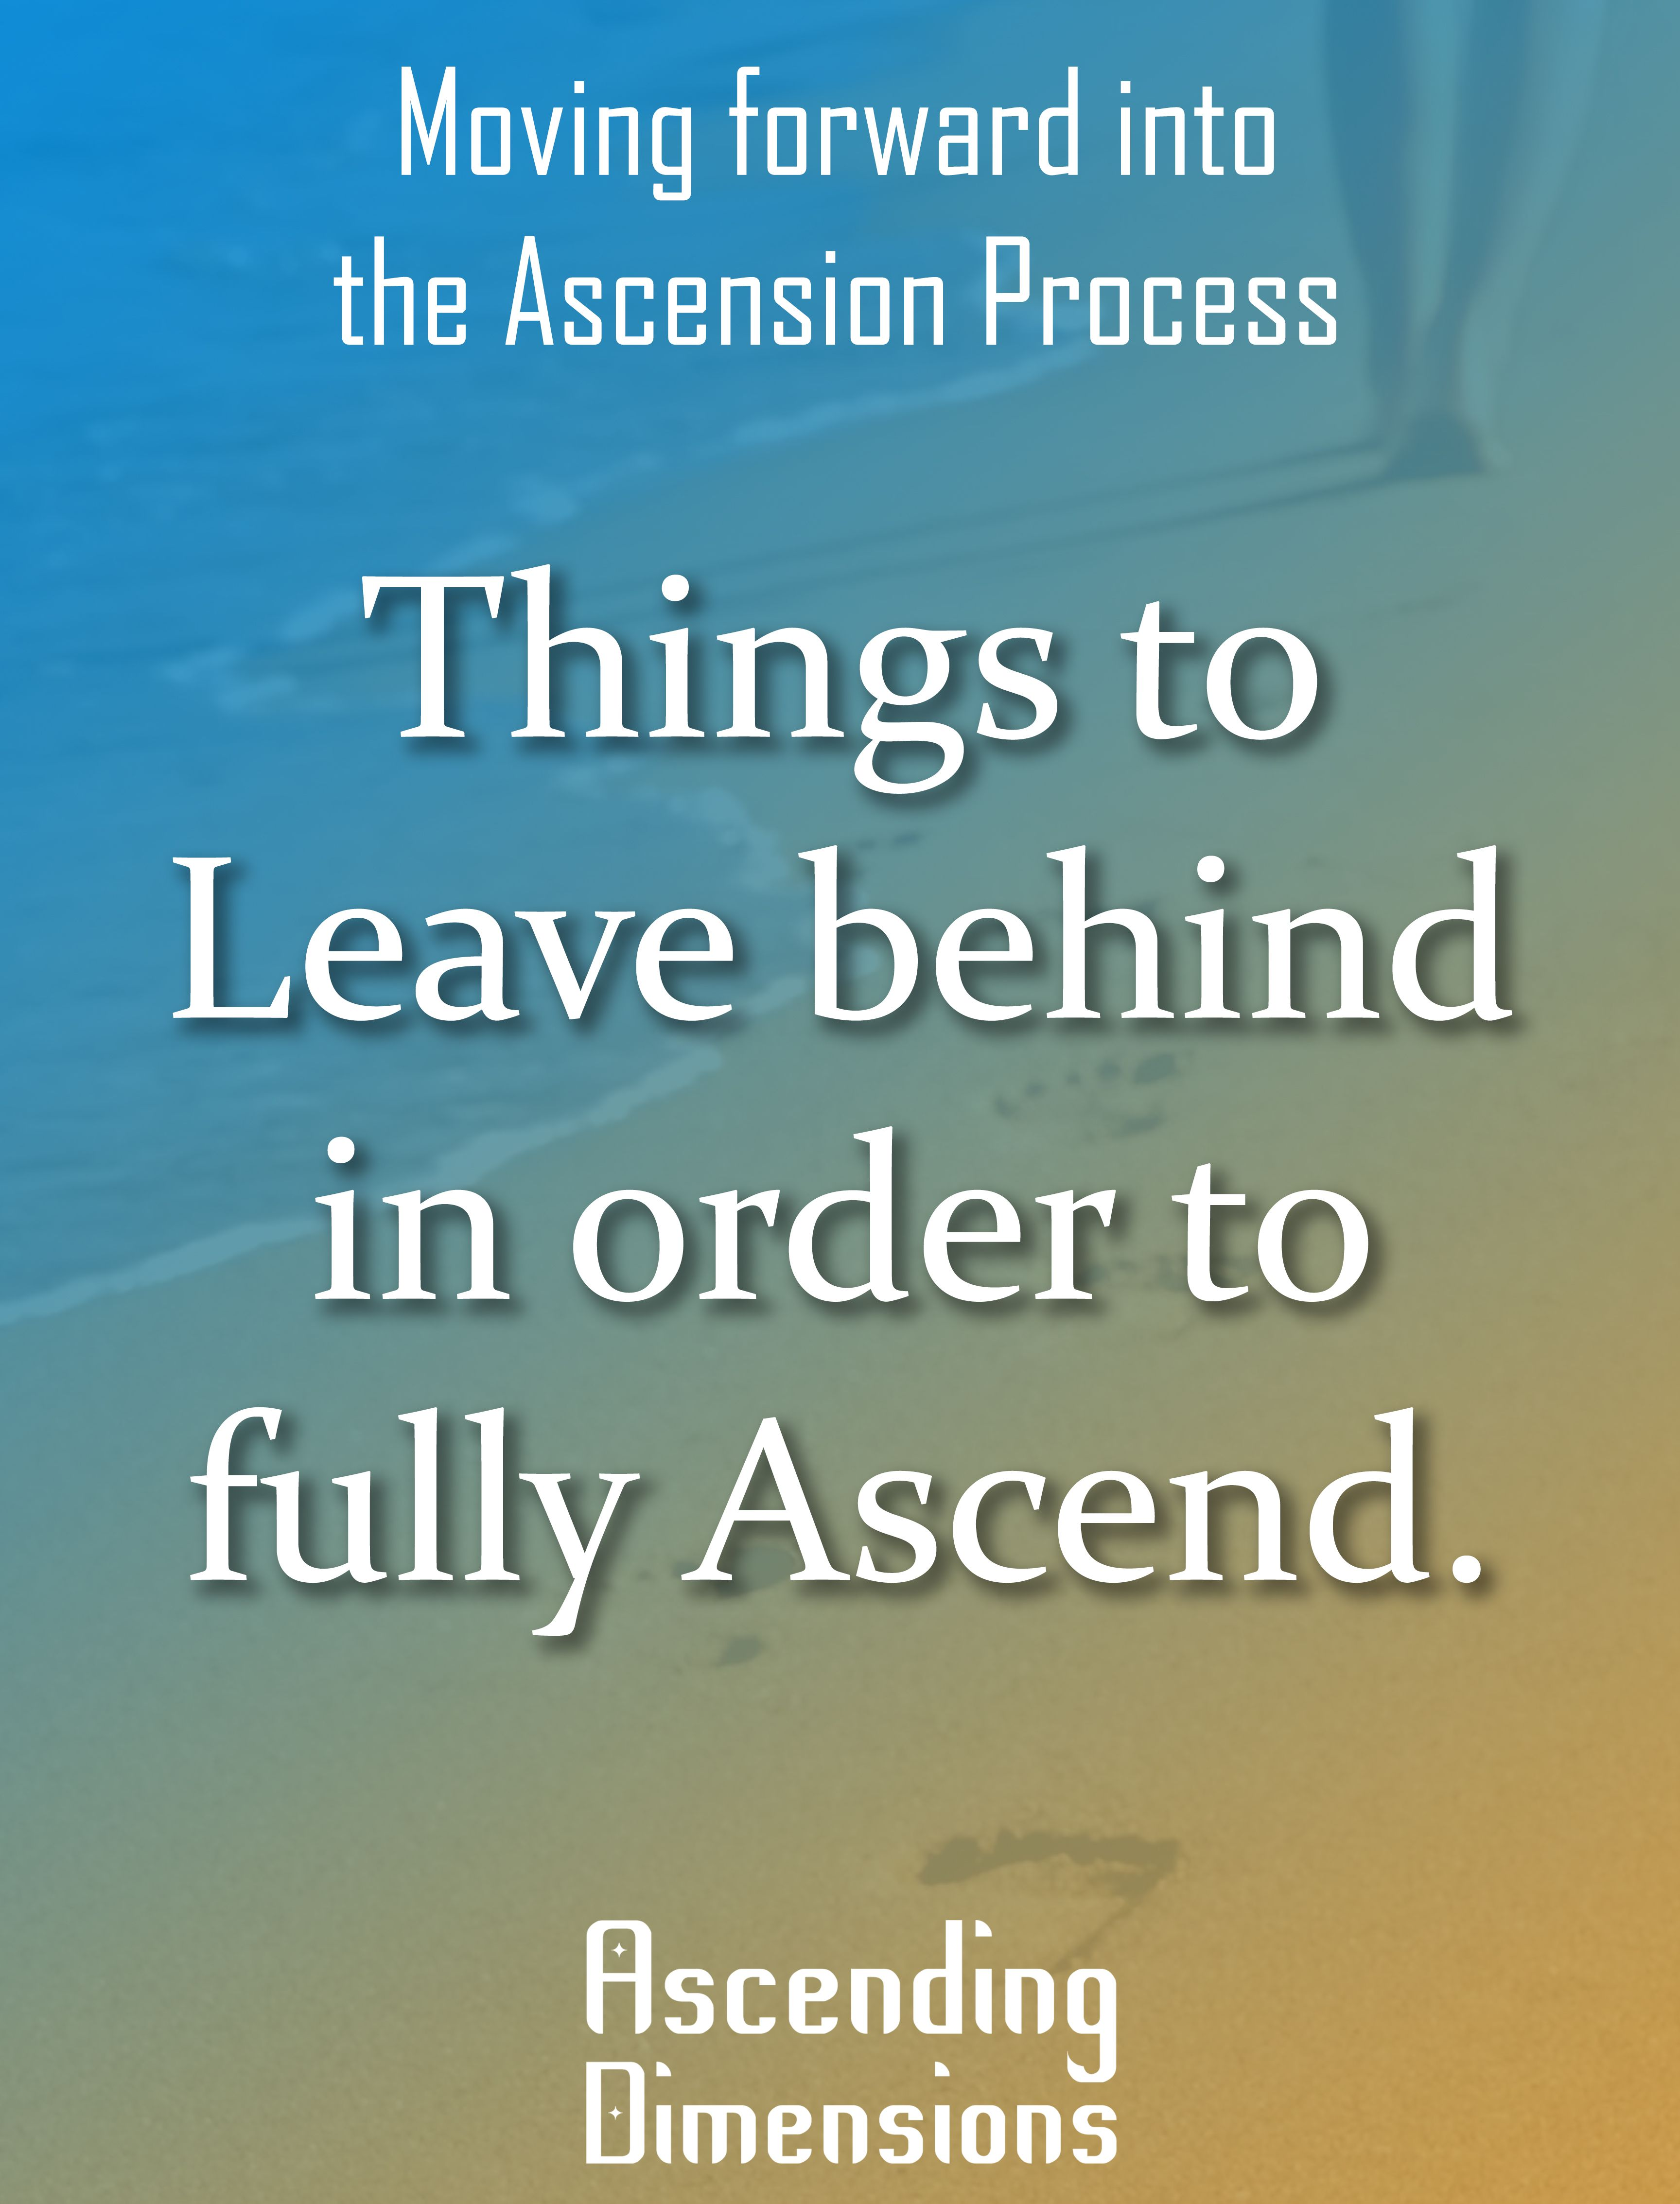 Things to leave behind before Ascending into the Higher Dimensions ...